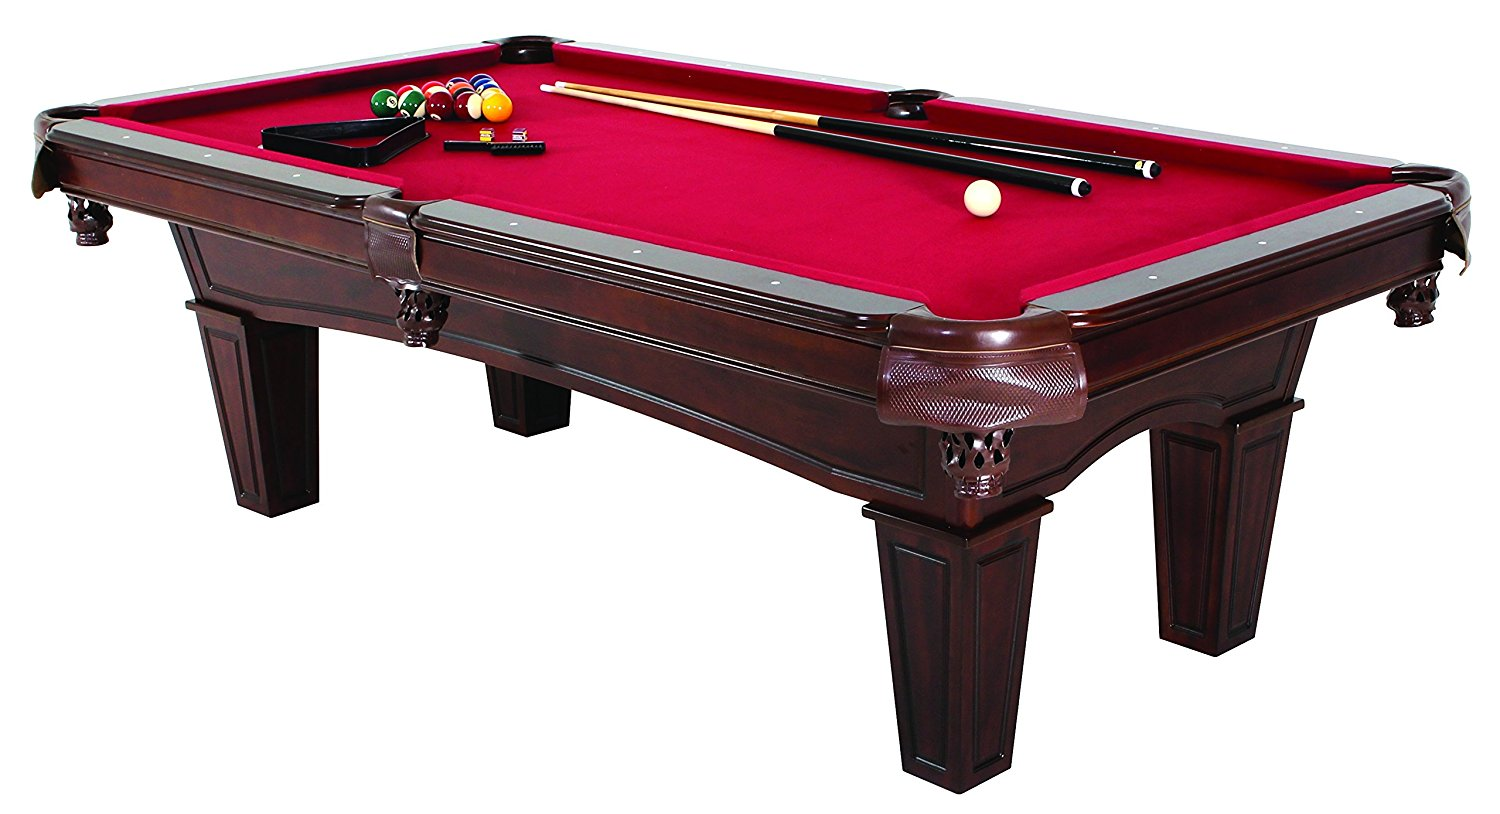 2.-Minnesota-Fats-Fullerton-Billiard-Table